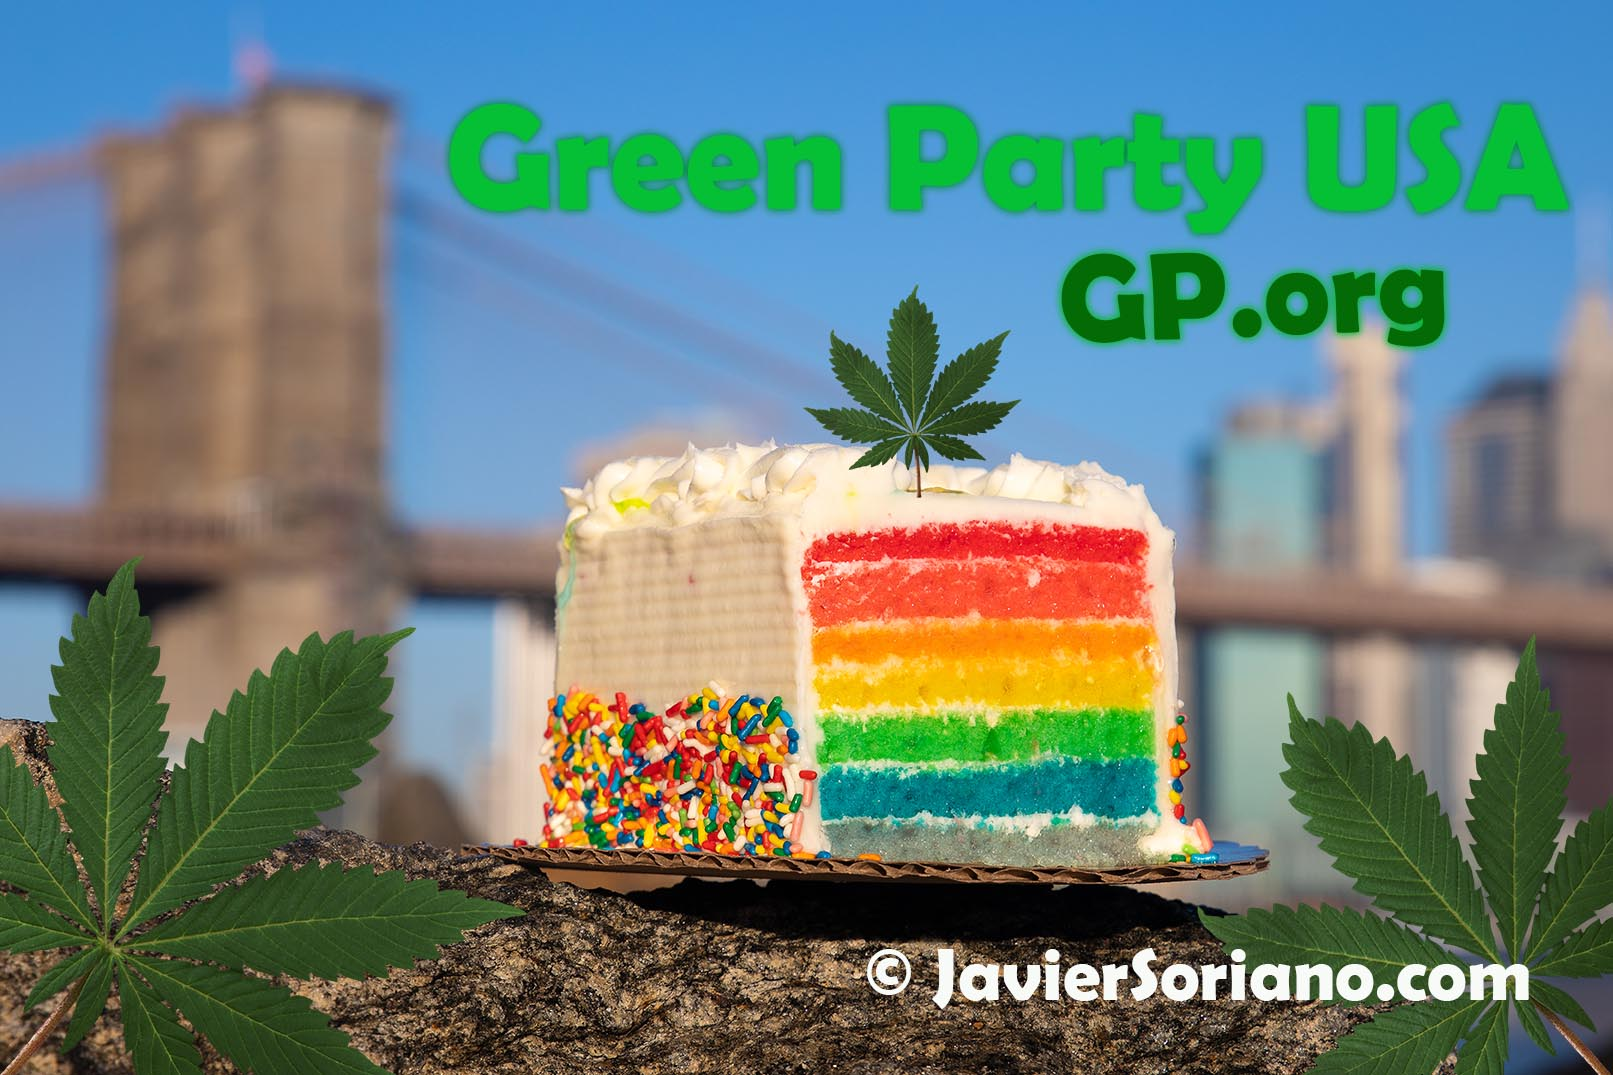 The Green Party of the United States of America supports the legalization of Marijuana. Photo/Artwork by Javier Soriano/www.JavierSoriano.com